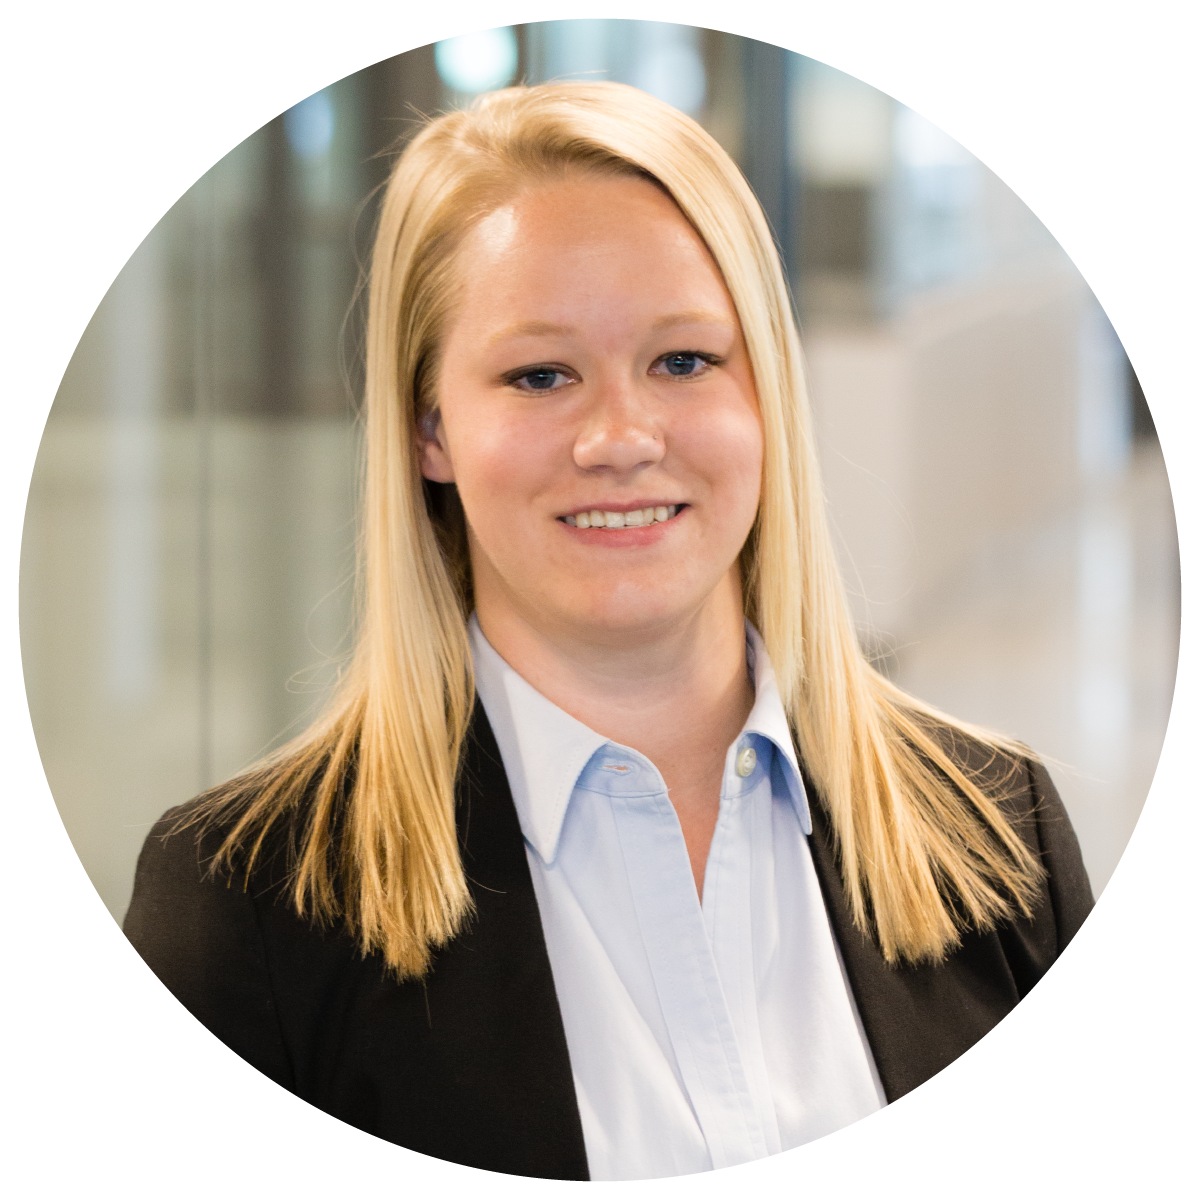 Marie Stromme, Director of Customer Experience - Connect with her on LinkedIn.